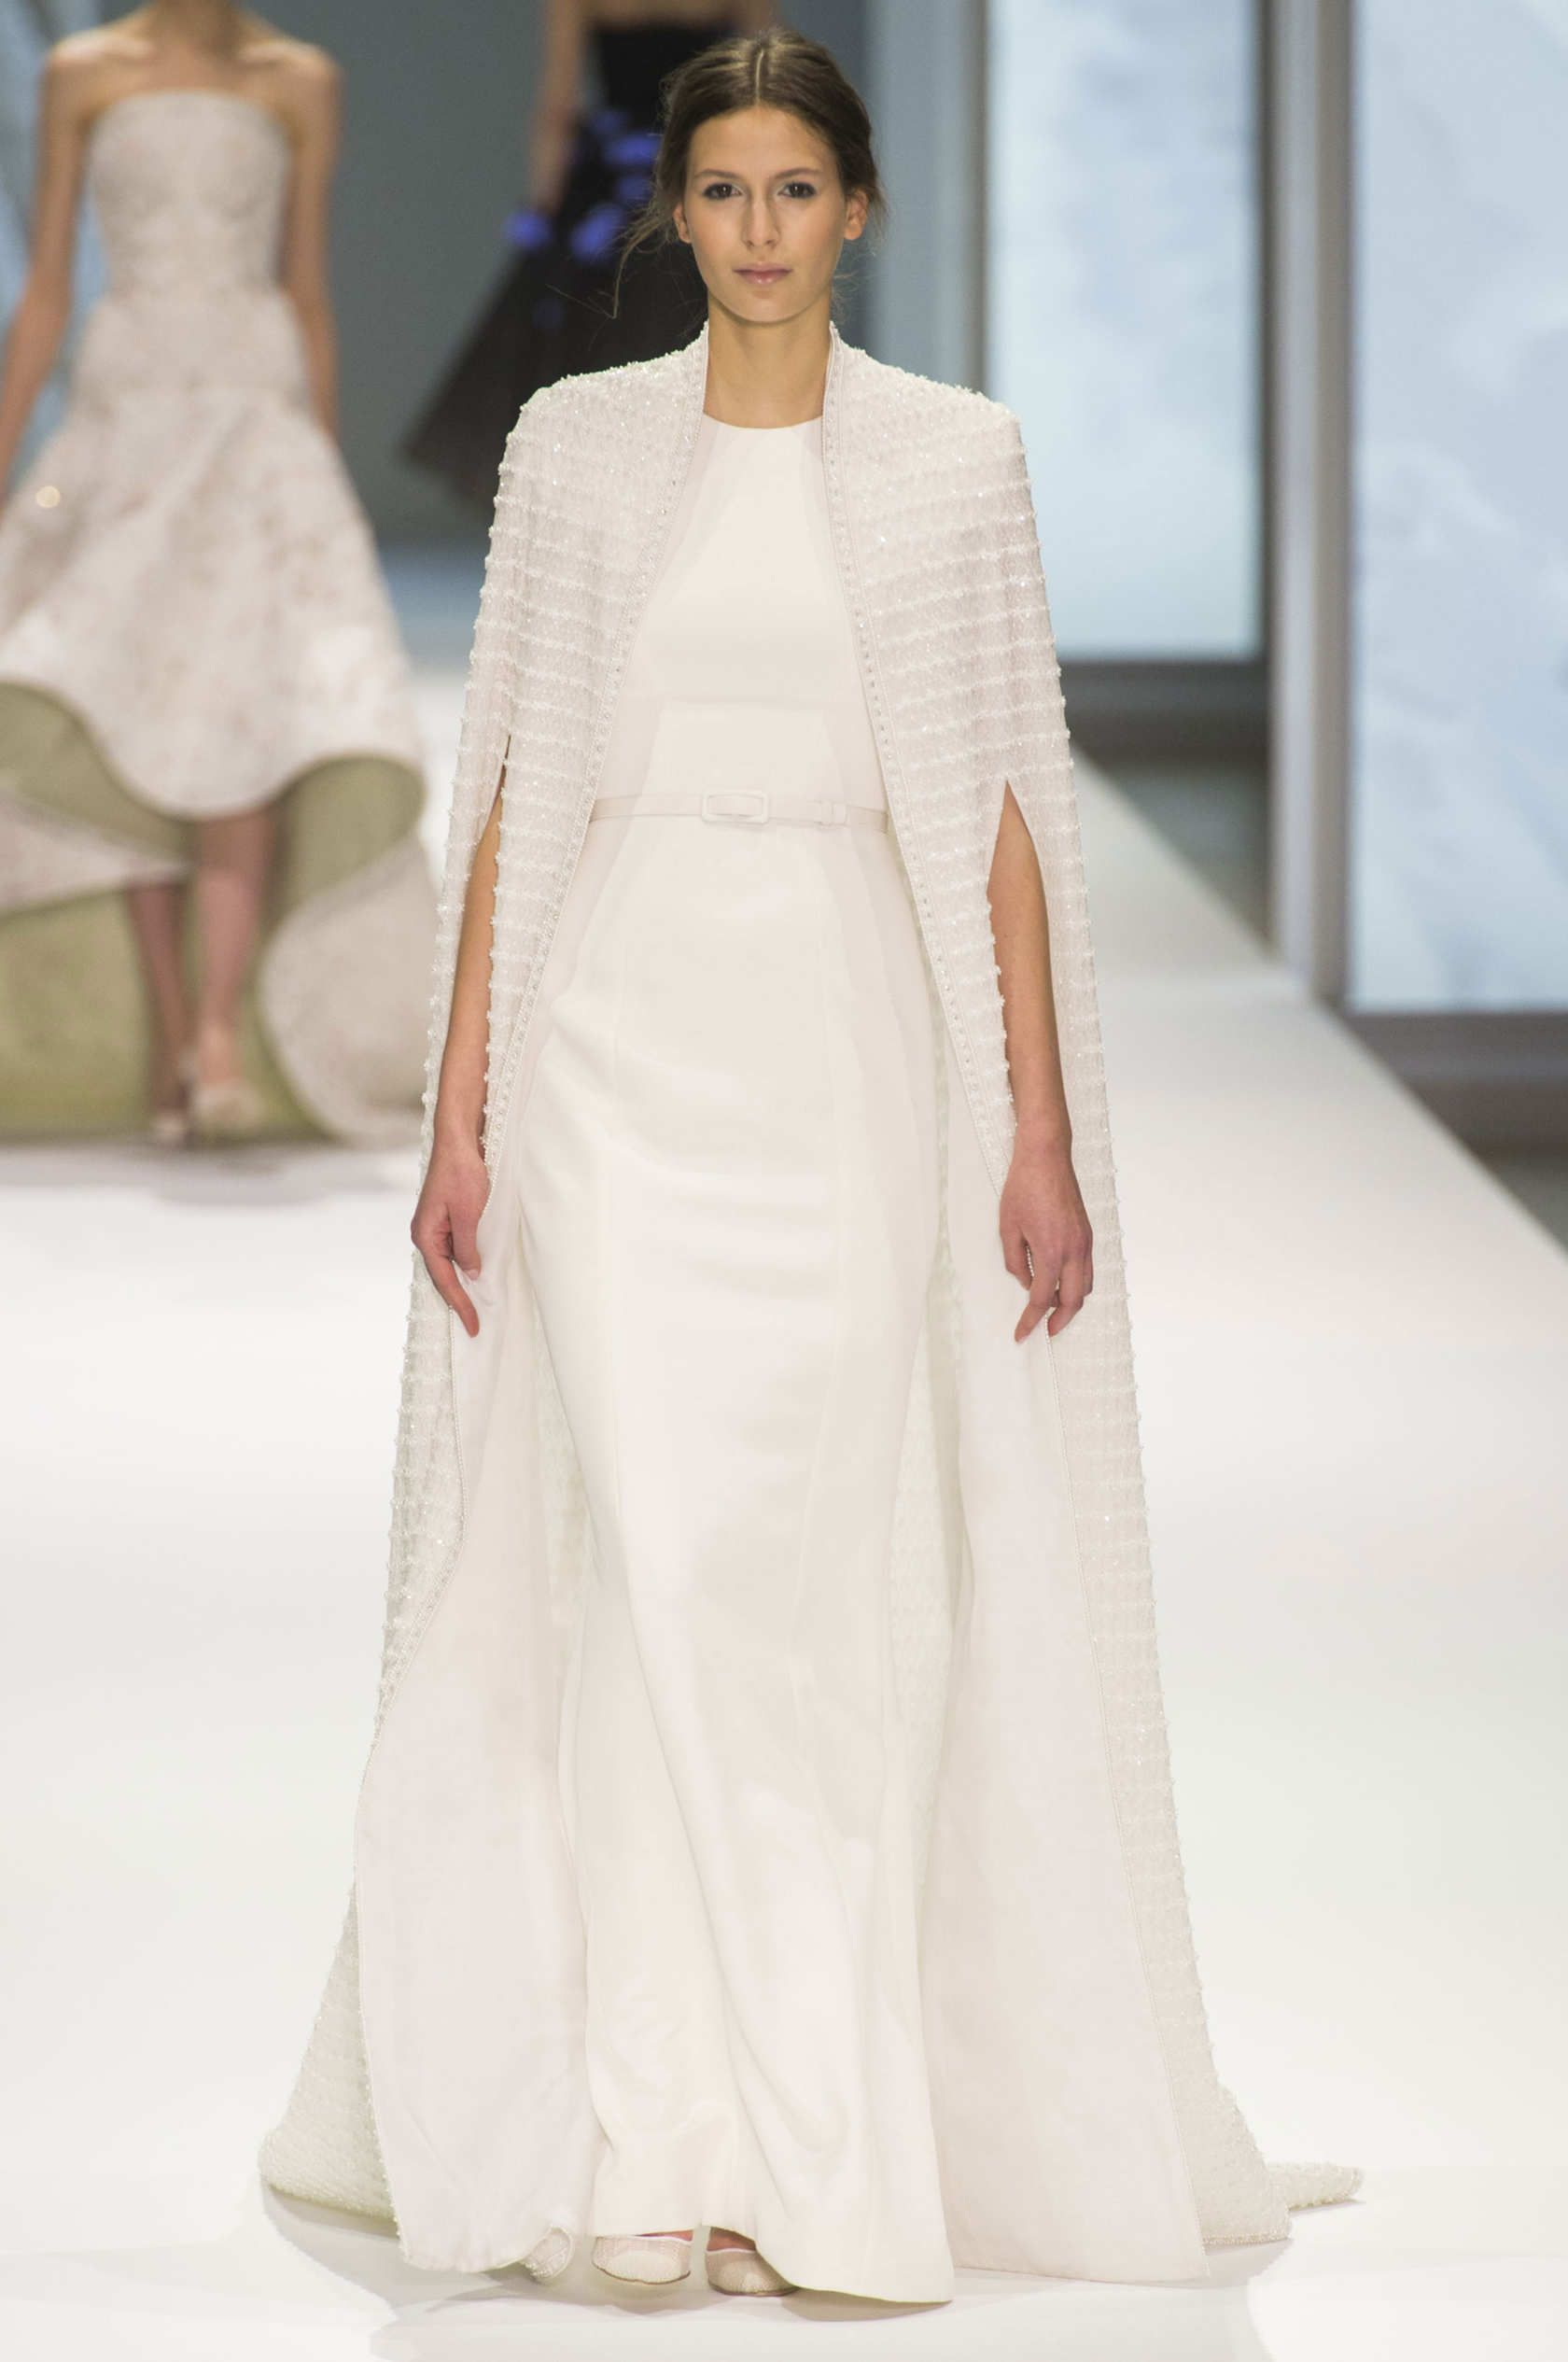 Ralph another great wedding cape #fashion #runway